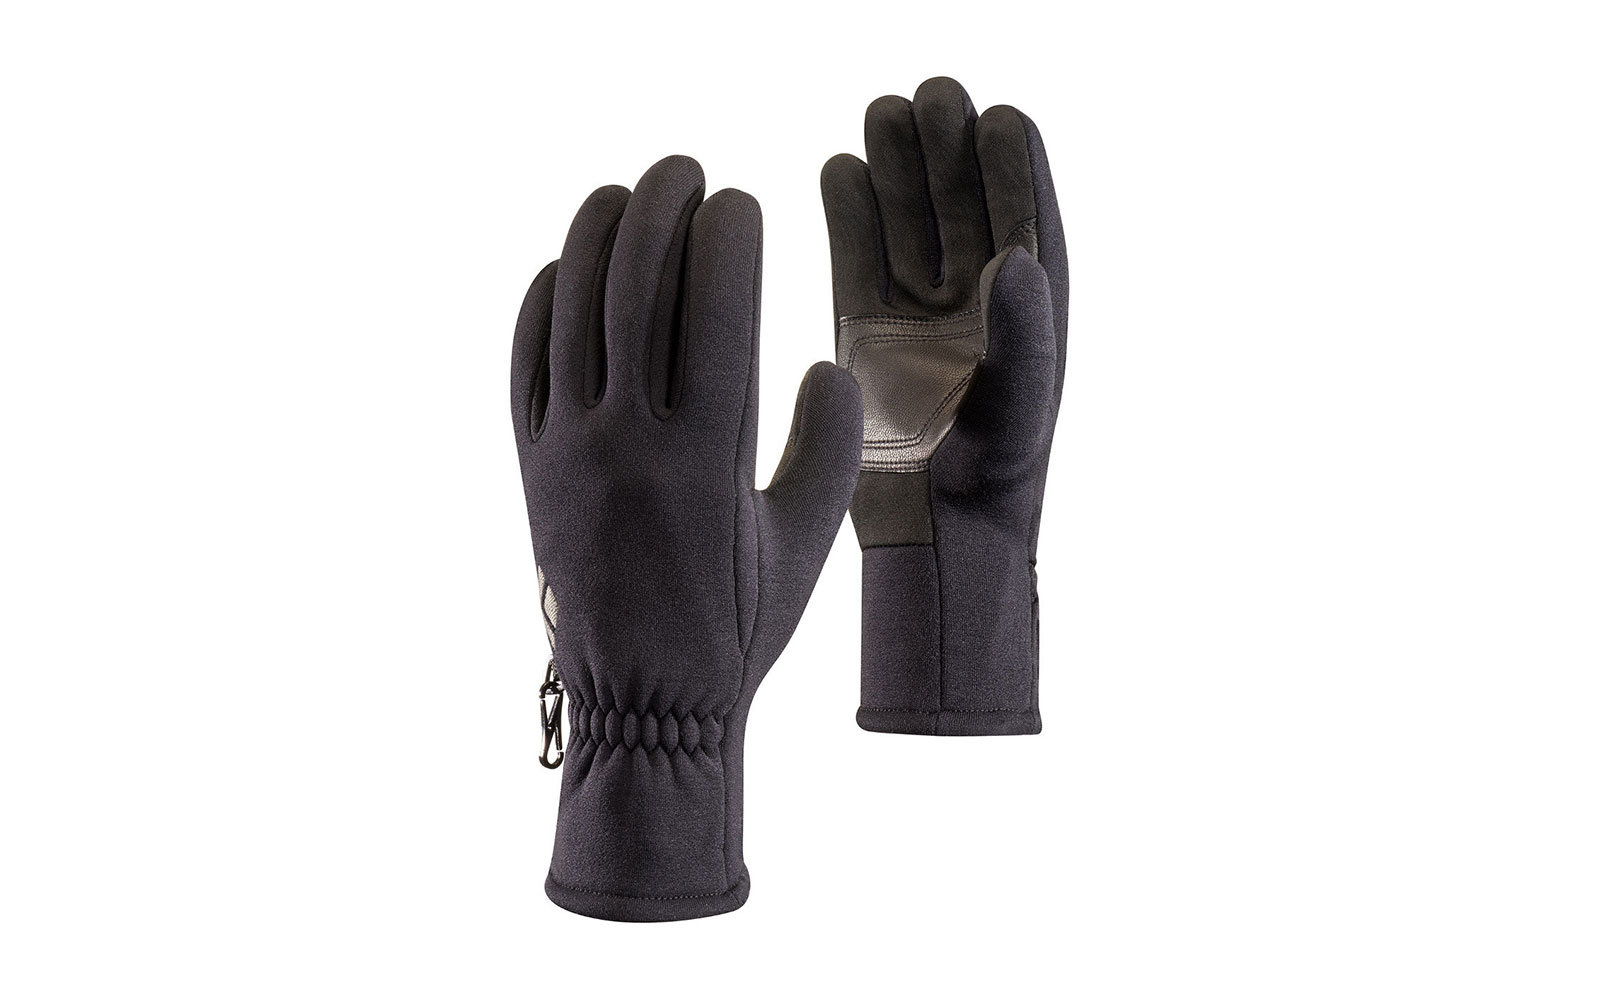 EMS heavy winter gloves